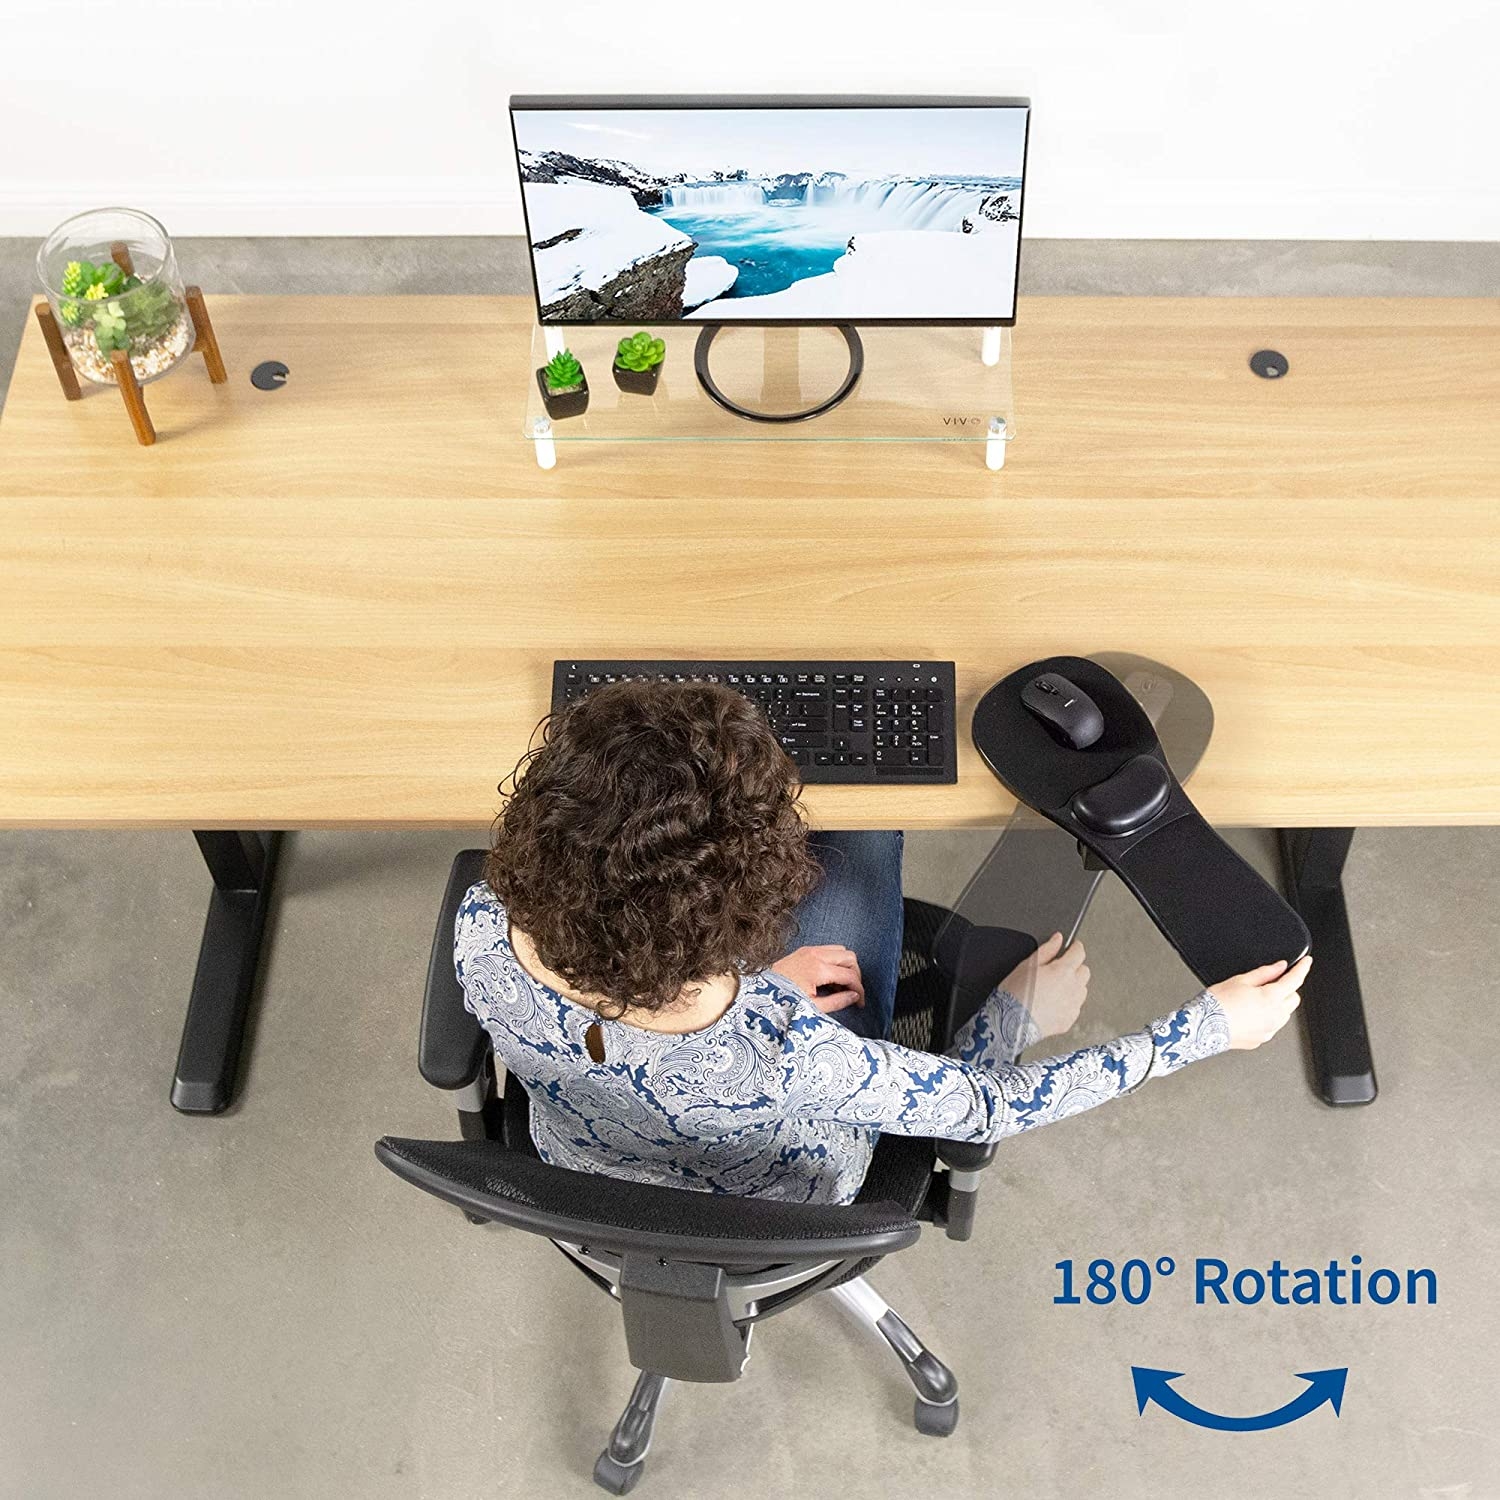 Extension Platform Tray Attaches to Desk or Chair MOUNT-MS02B VIVO Black Universal Clamp-on Adjustable Arm Rest Mouse Pad with Wrist Cushion